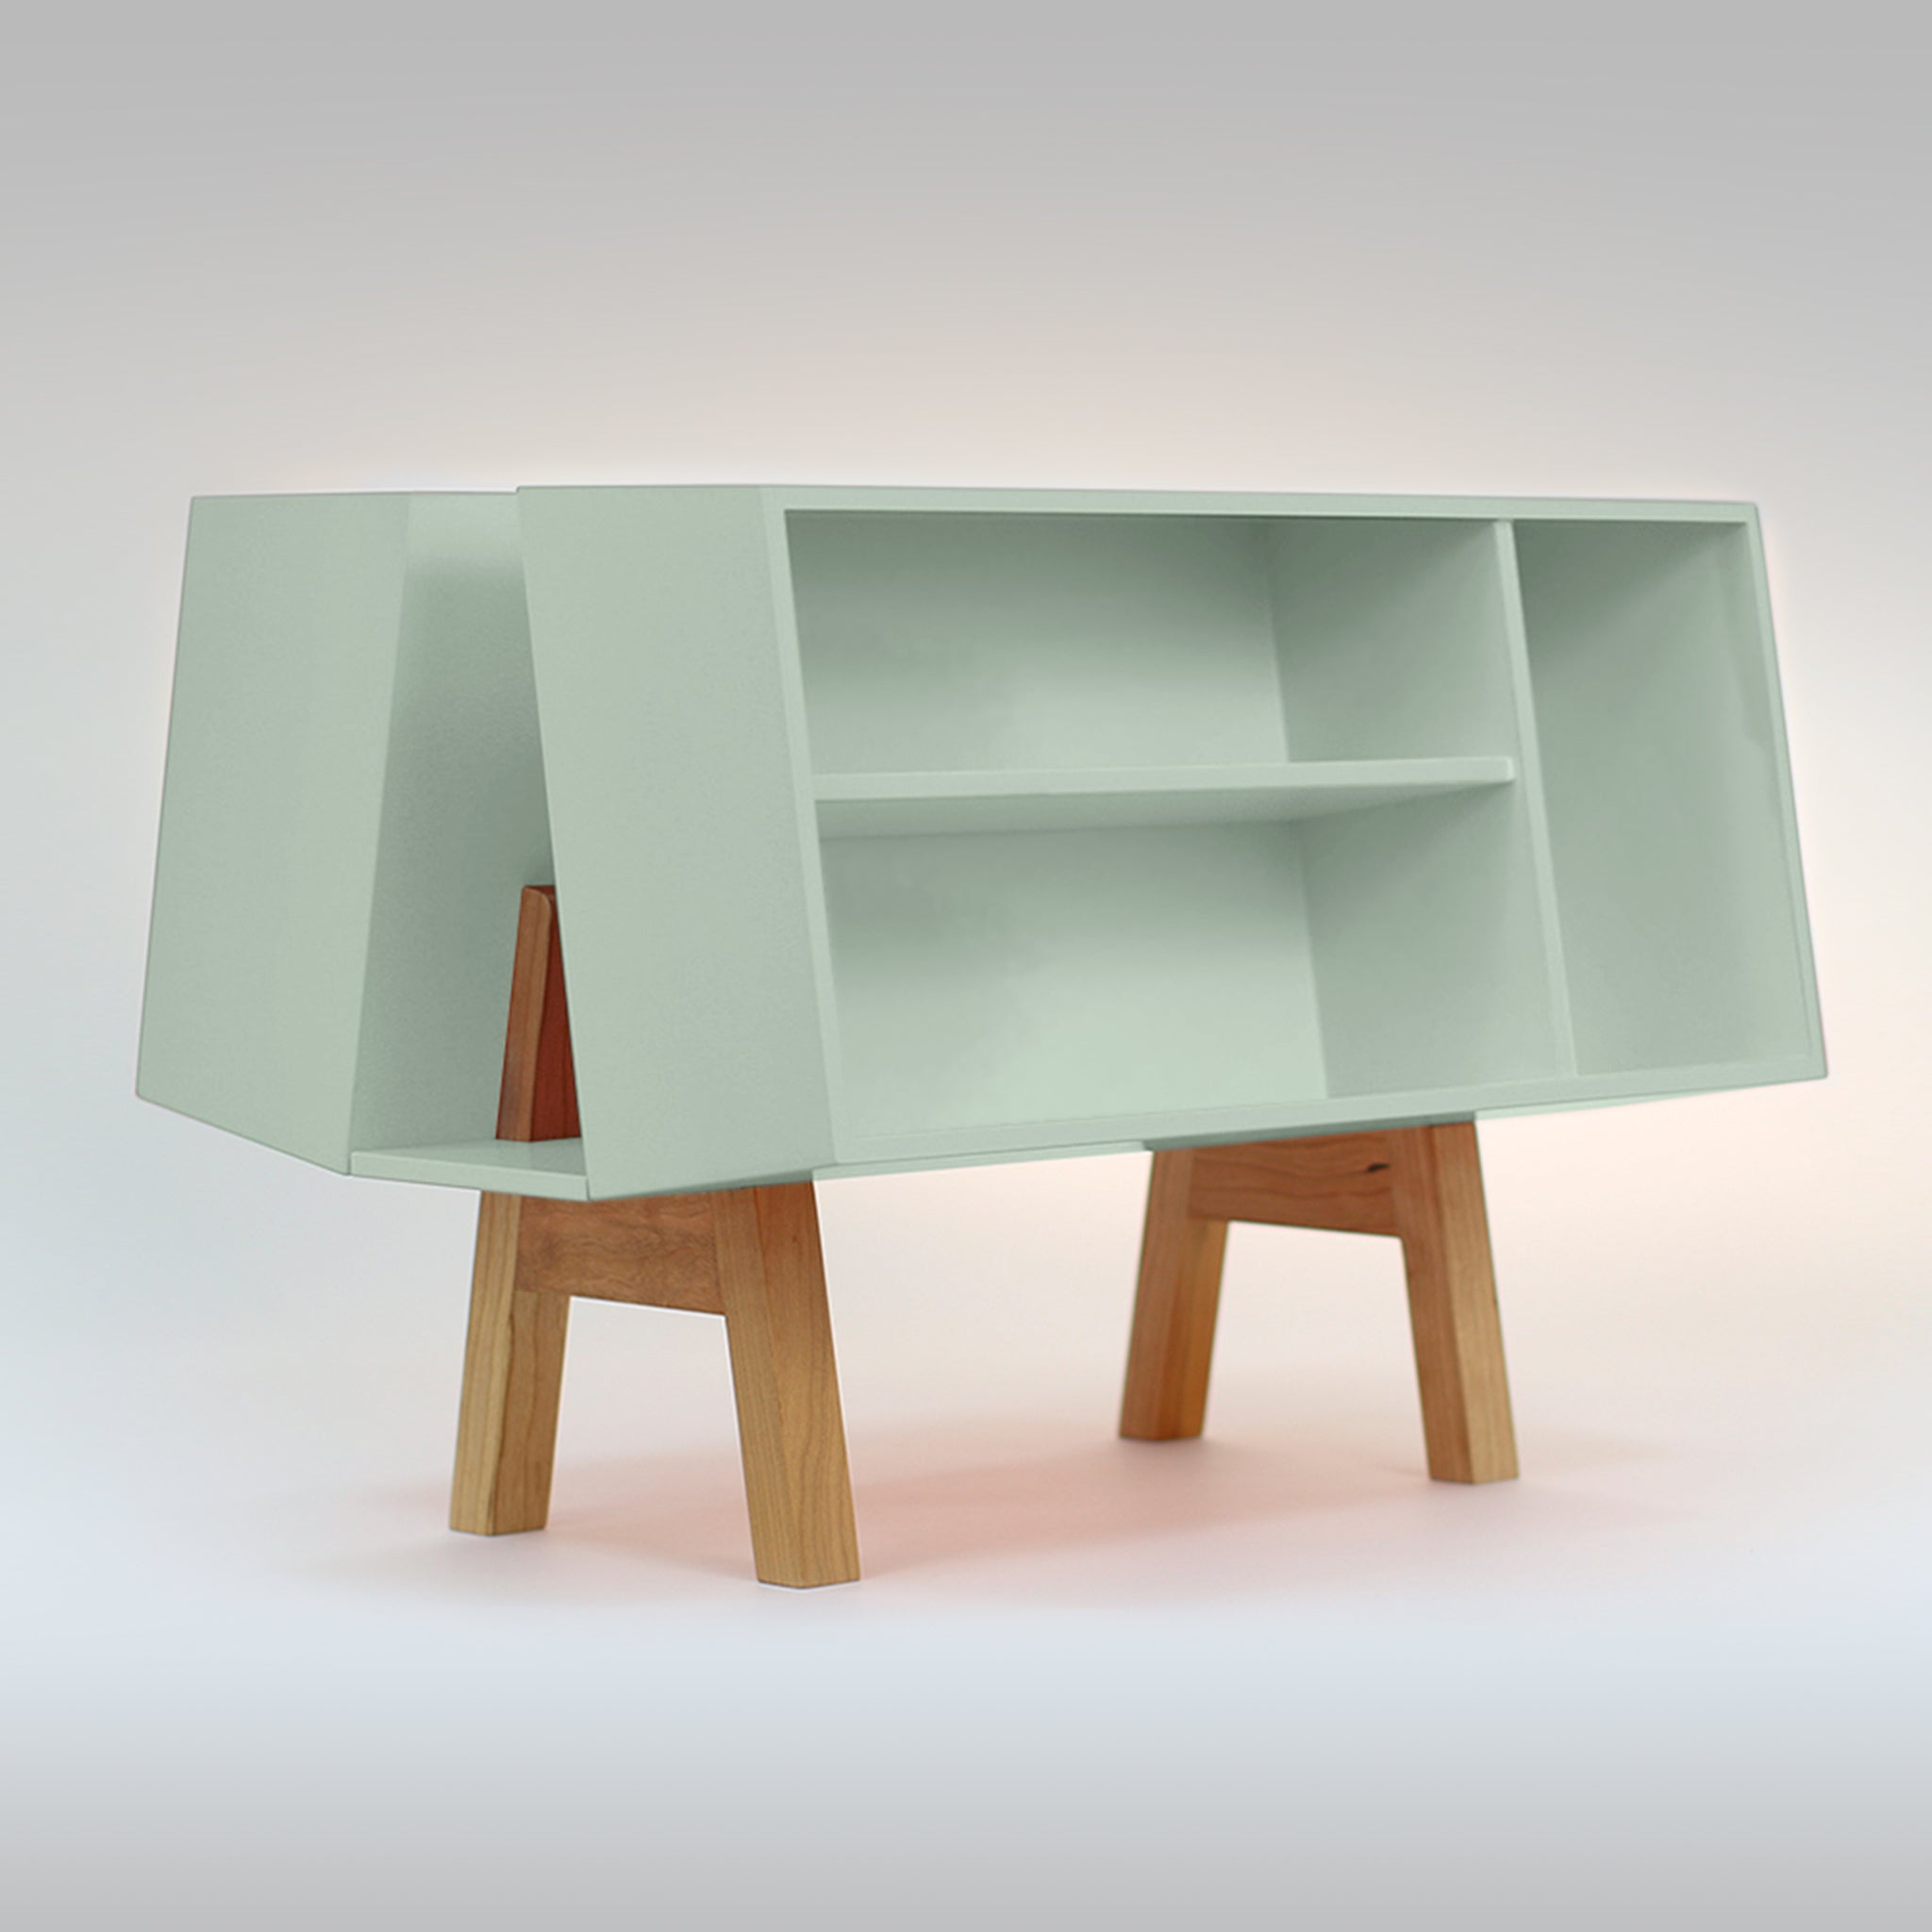 Isokon Penguin Donkey Mark 2: Dusty Green